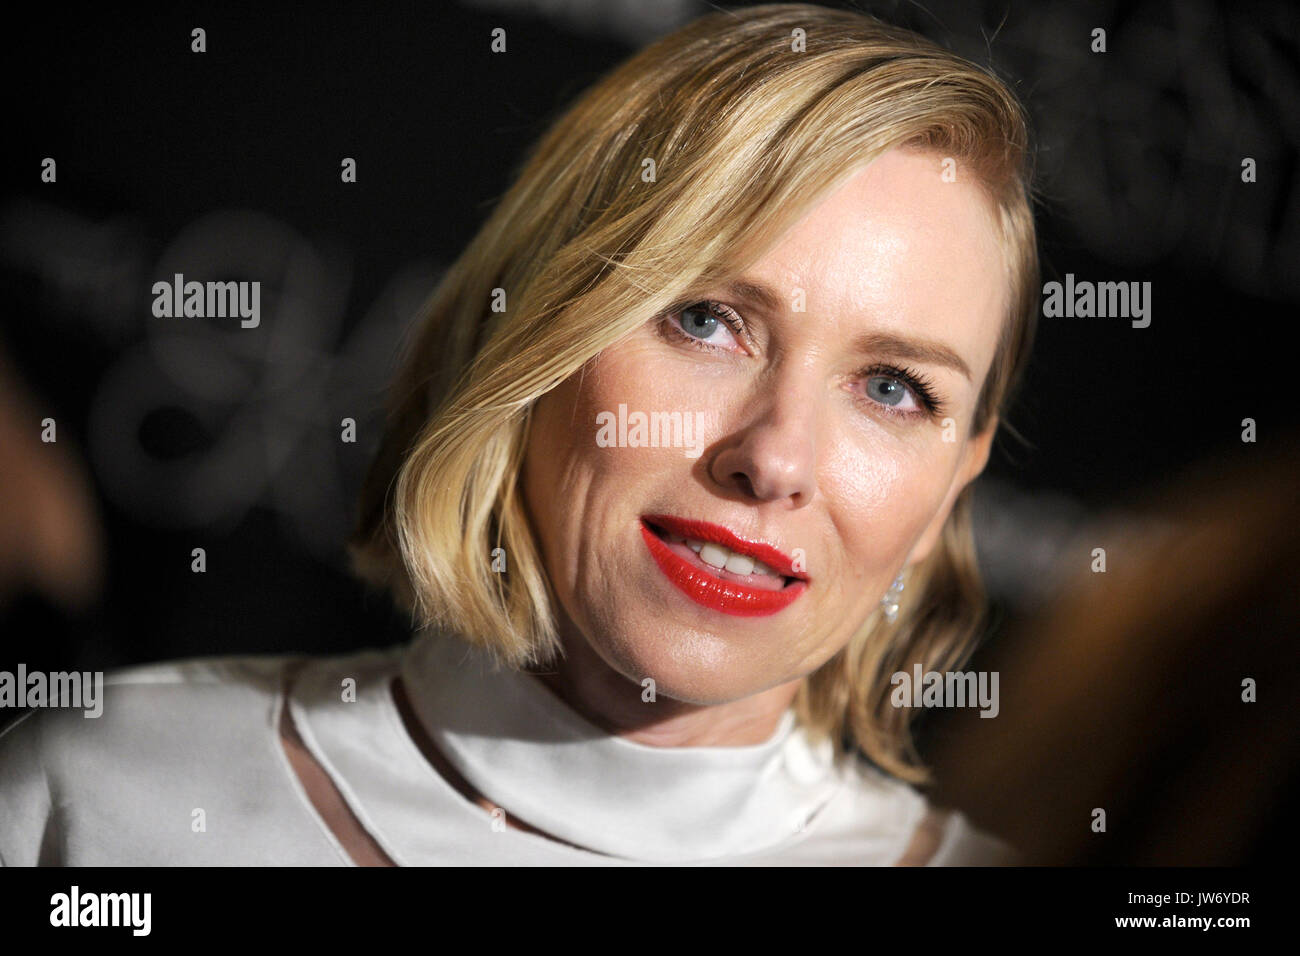 Naomi Watts attends 'The Glass Castle' New York screening at SVA Theatre on August 9, 2017 in New York City. Stock Photo